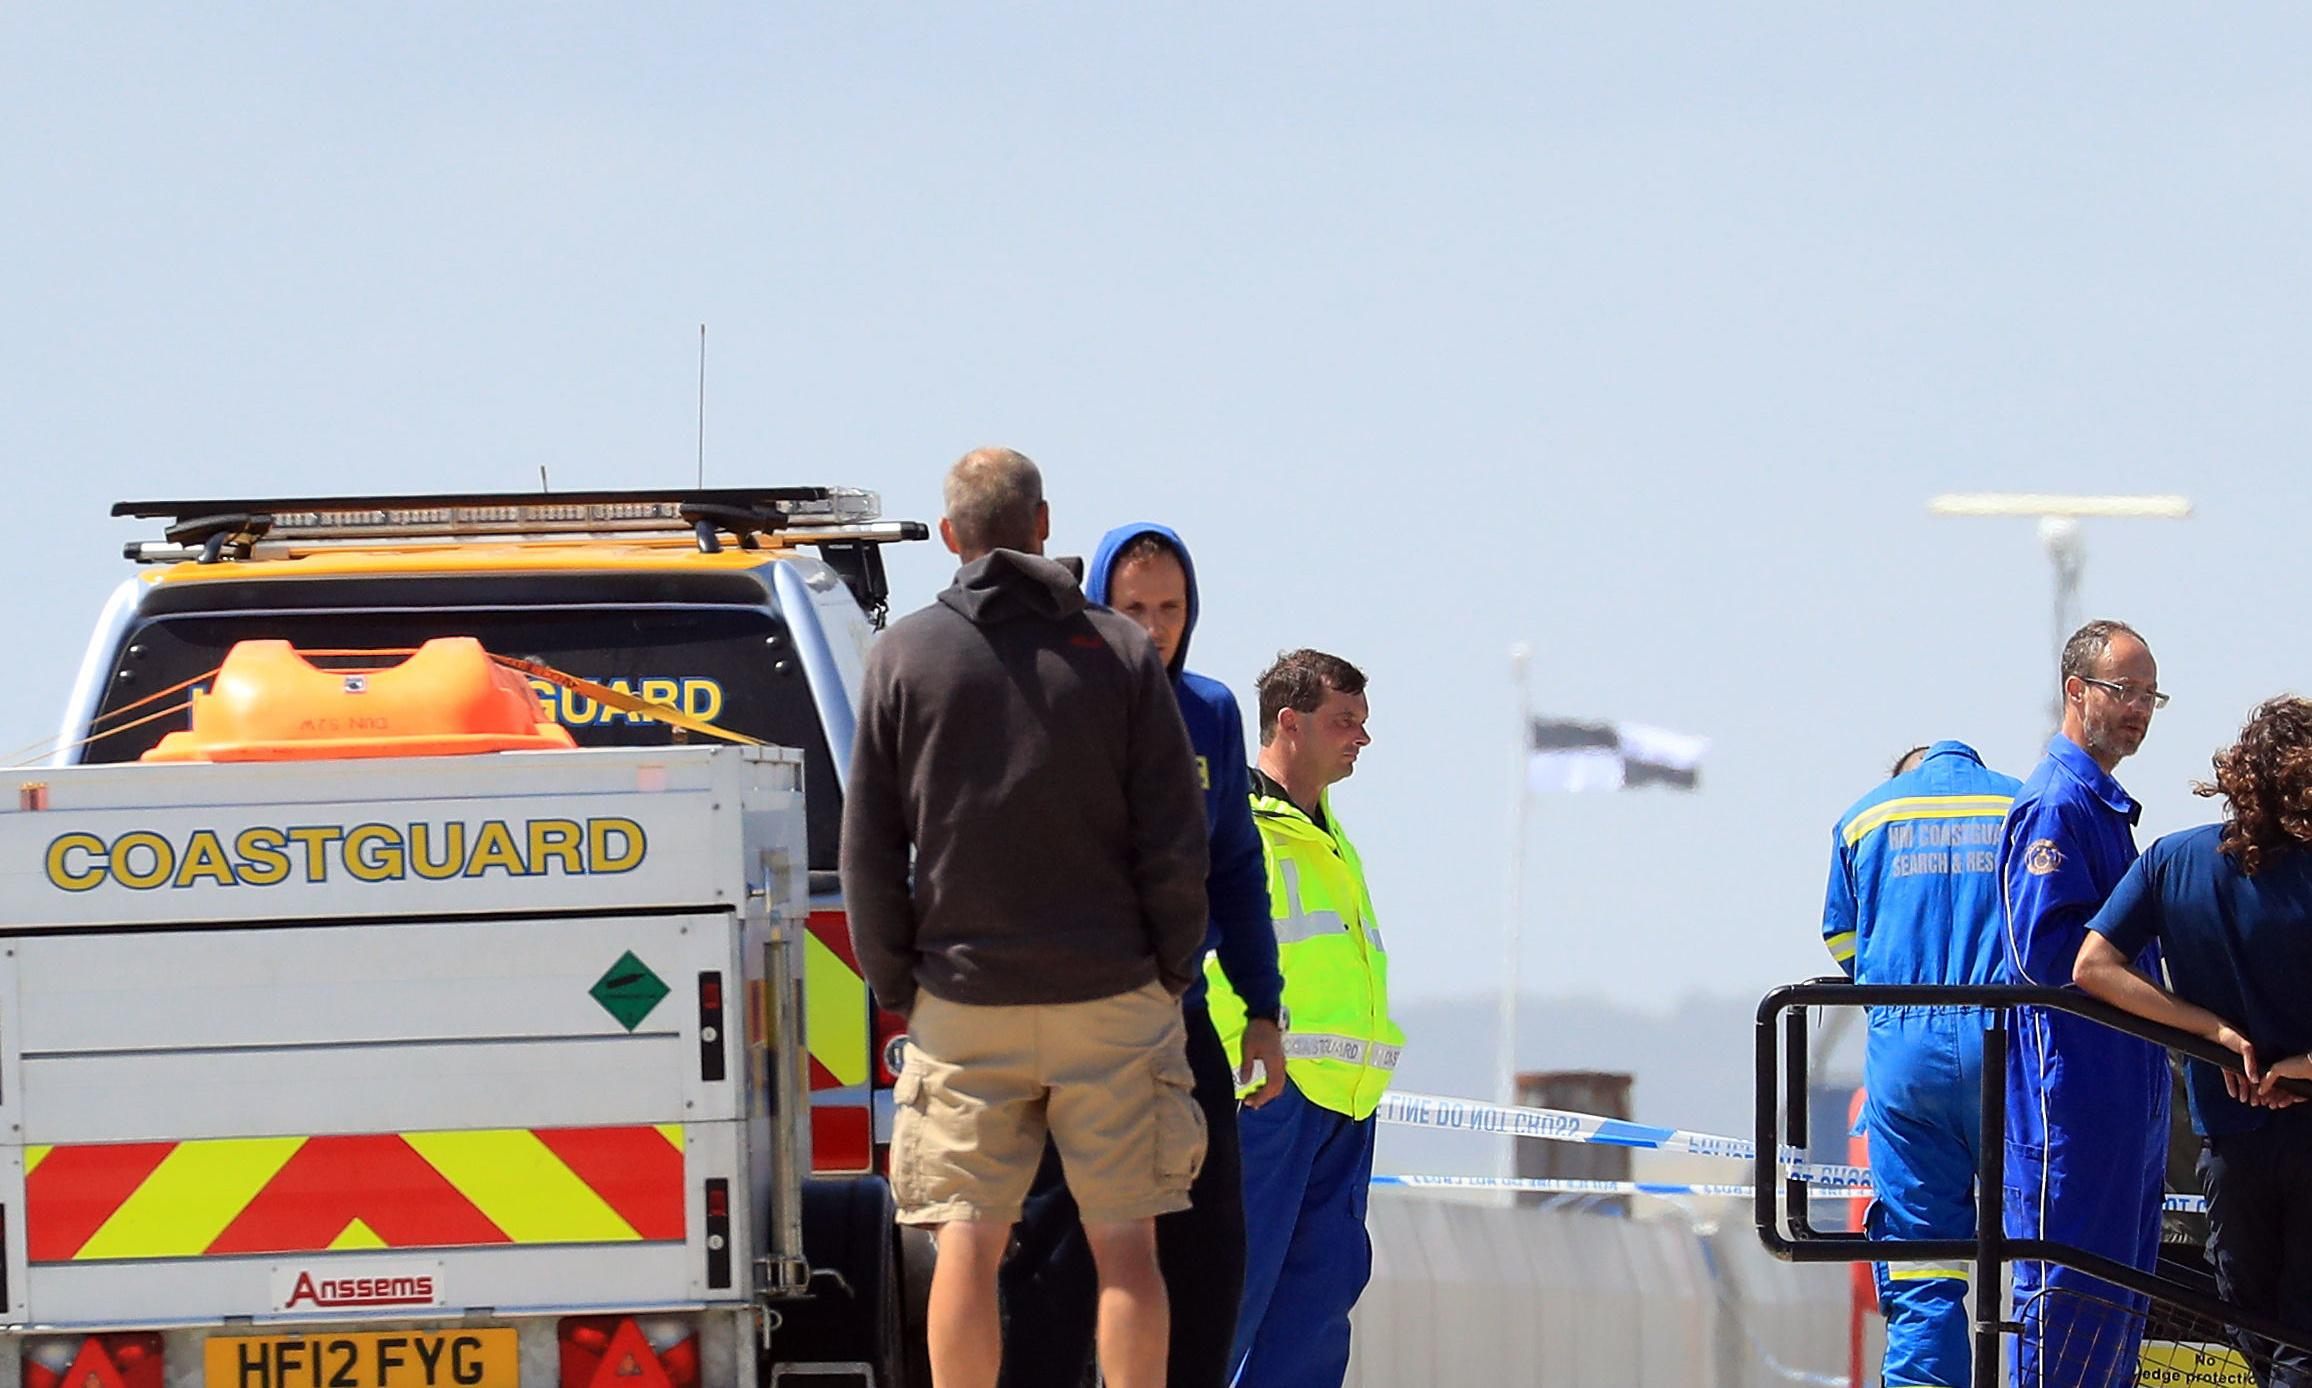 Man dies after tumbling into wall at Camber Sands